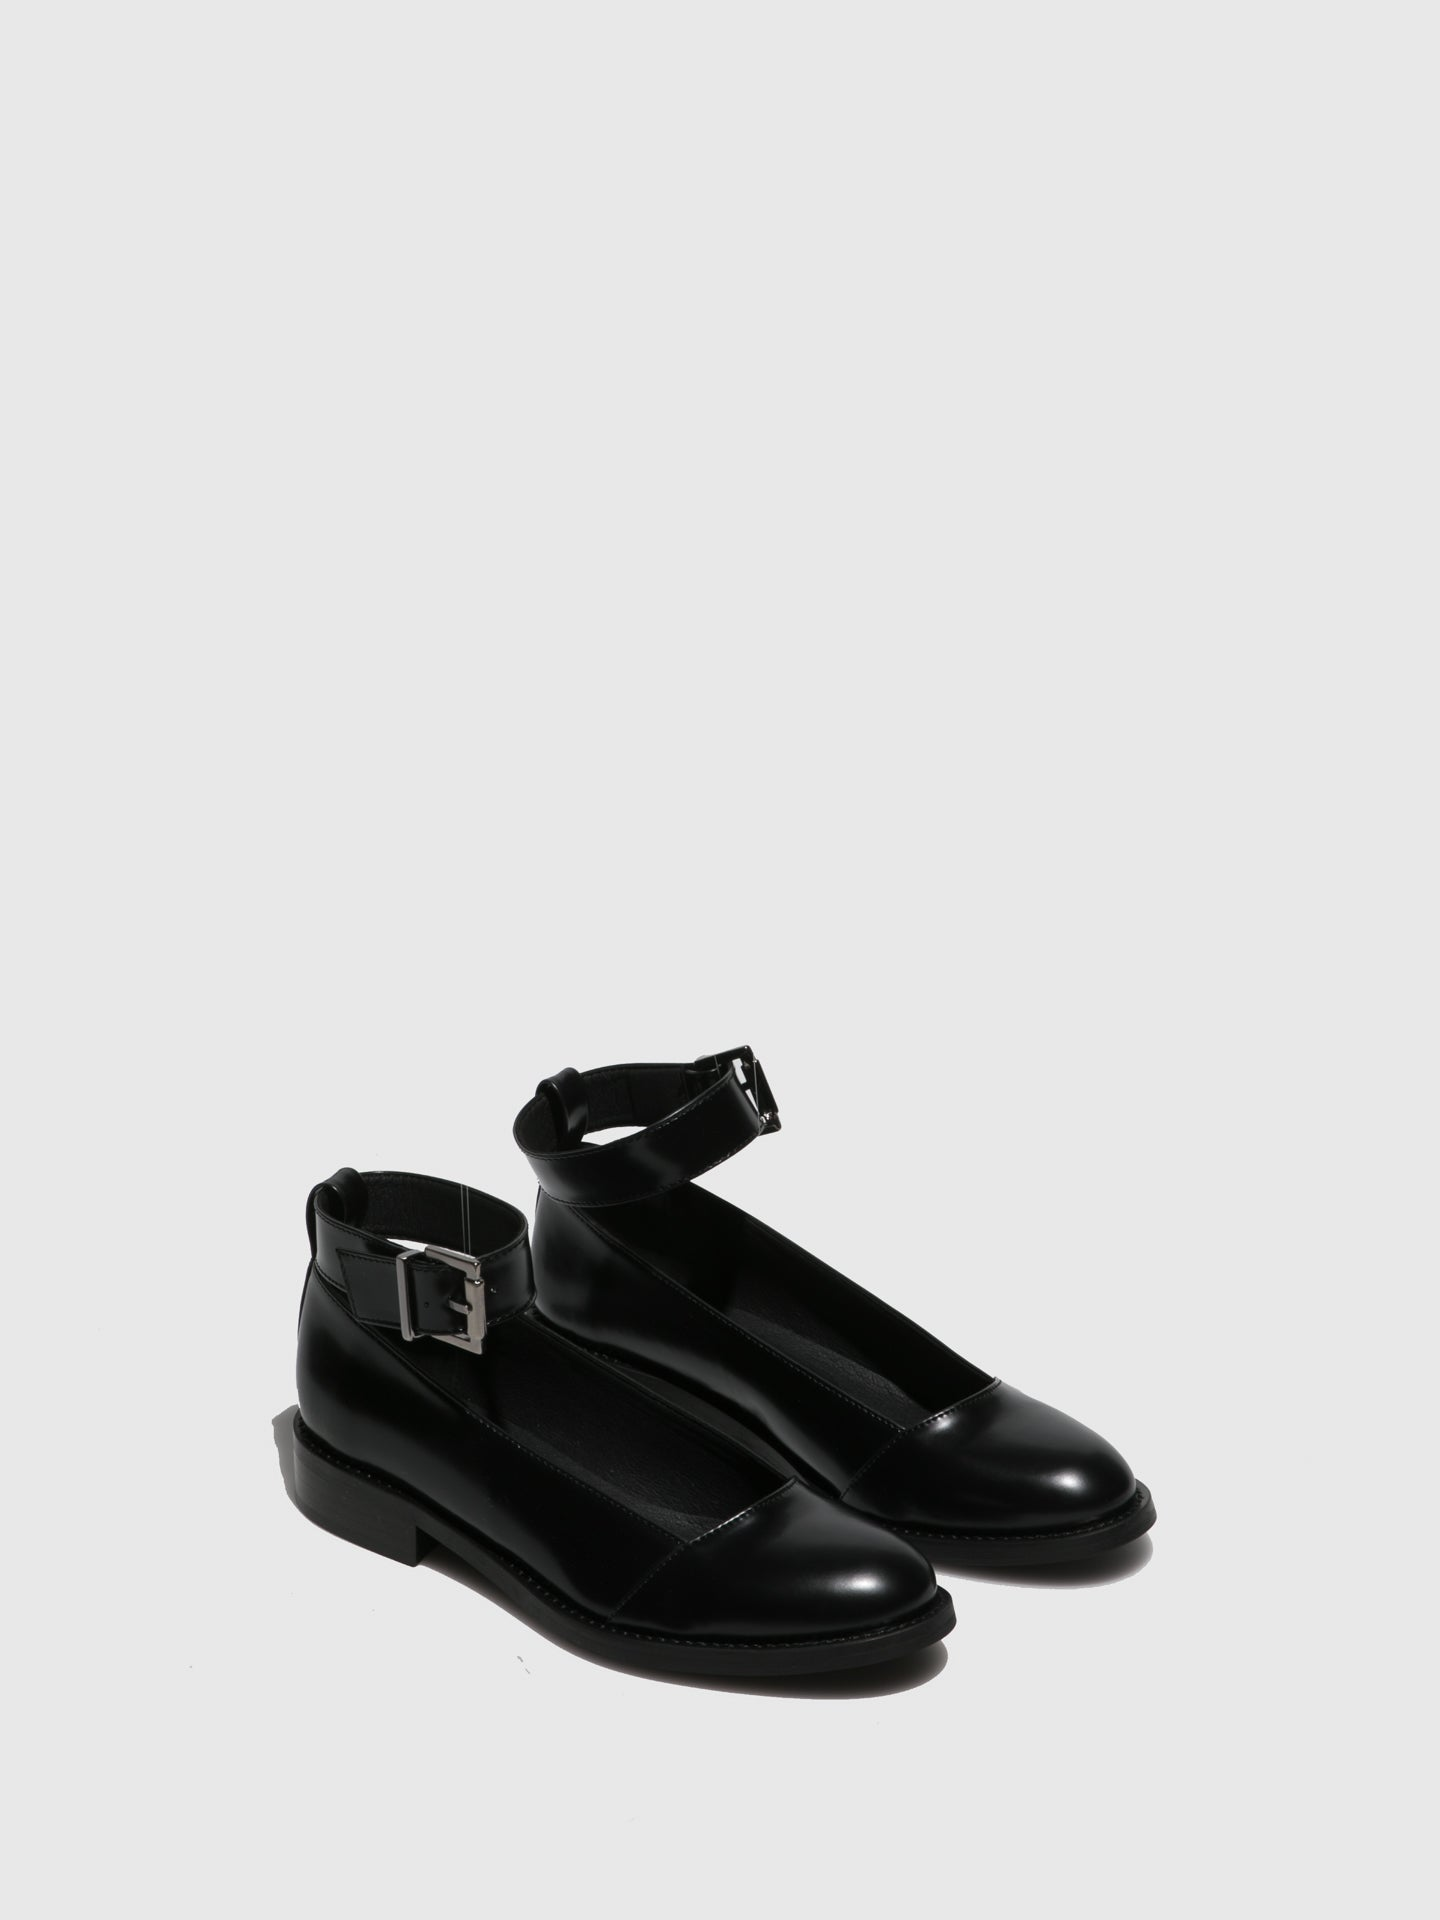 NAE Vegan Shoes Black Round Toe Ballerinas